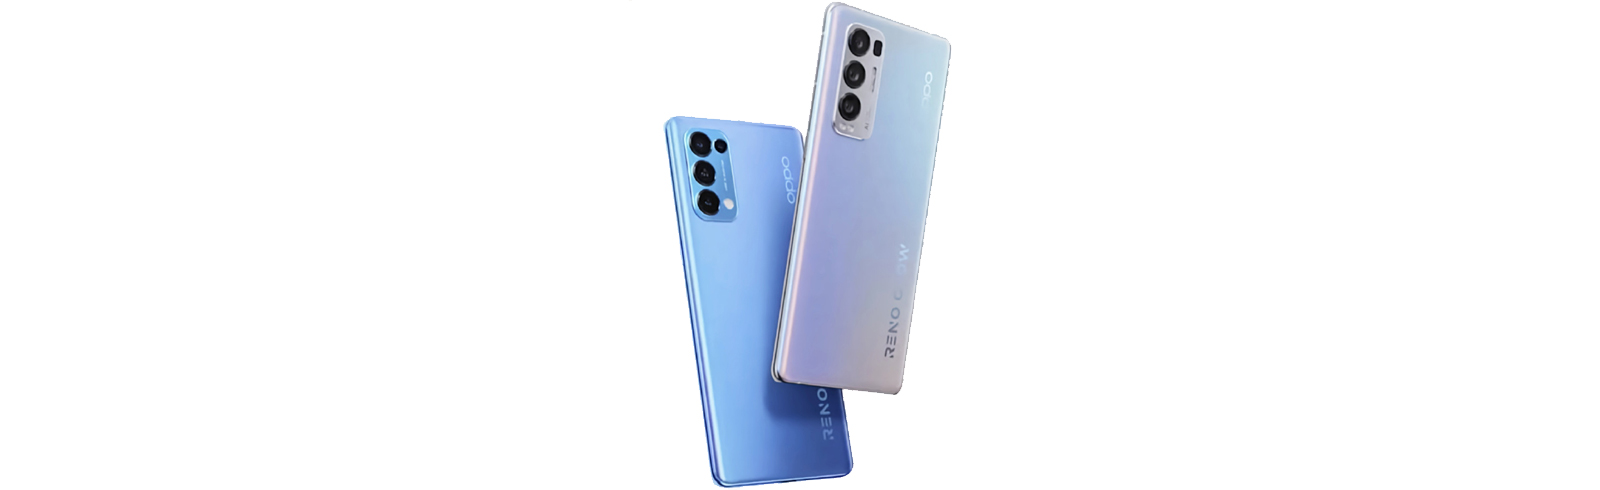 Oppo Reno5 Pro+ will be the first smartphone to sport the 50MP Sony IMX766 image sensor